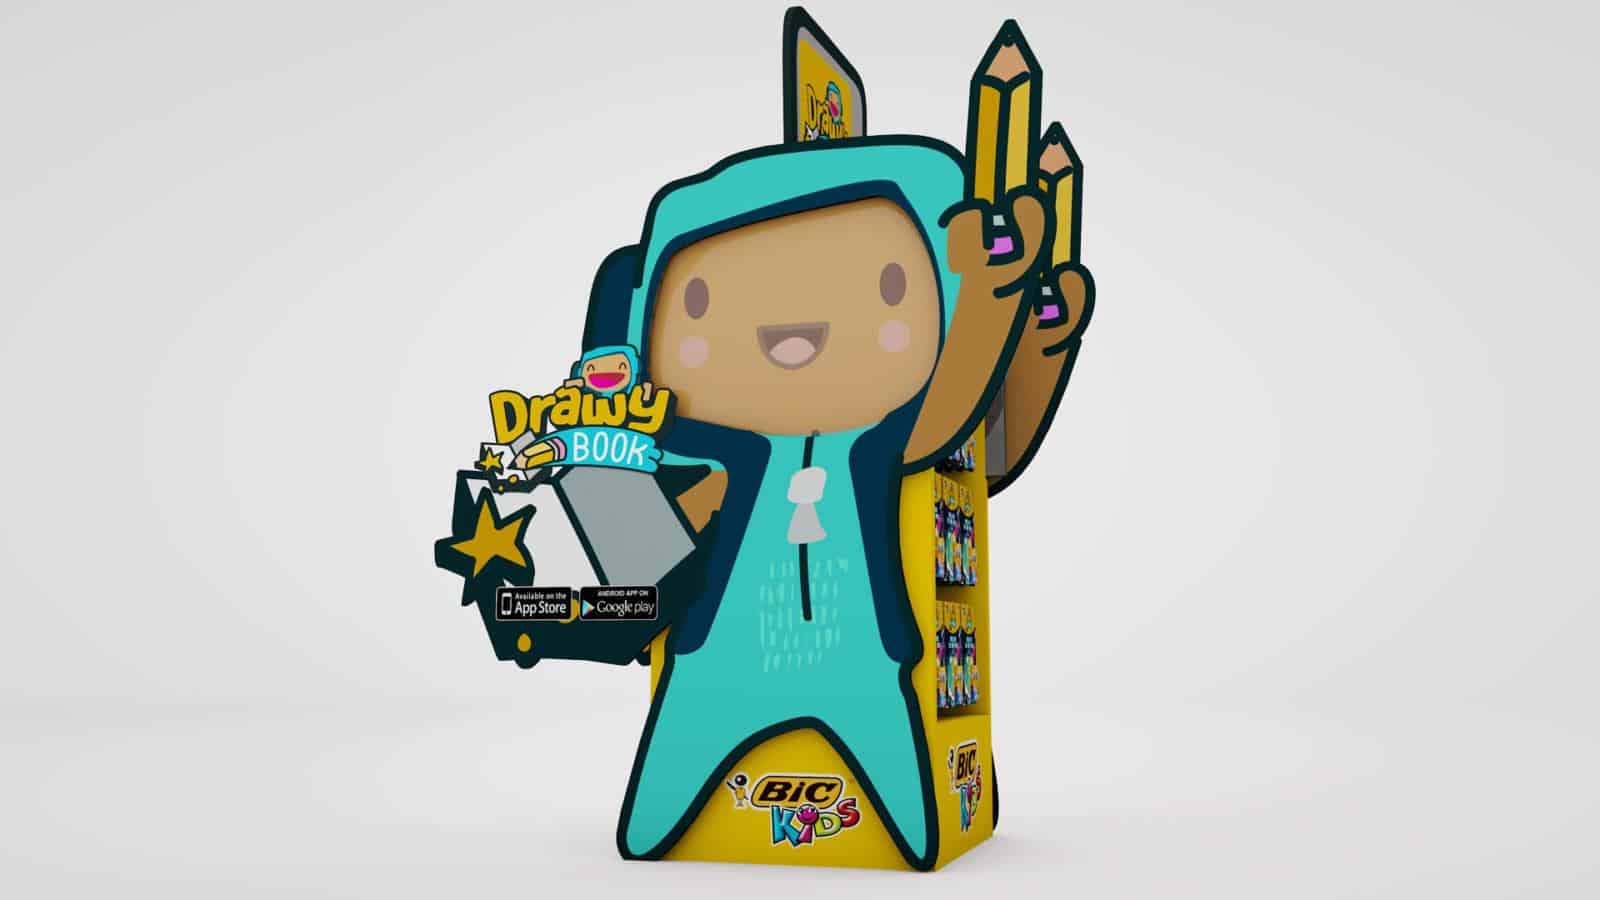 Bic Drawy book augmented reality colouring book POS